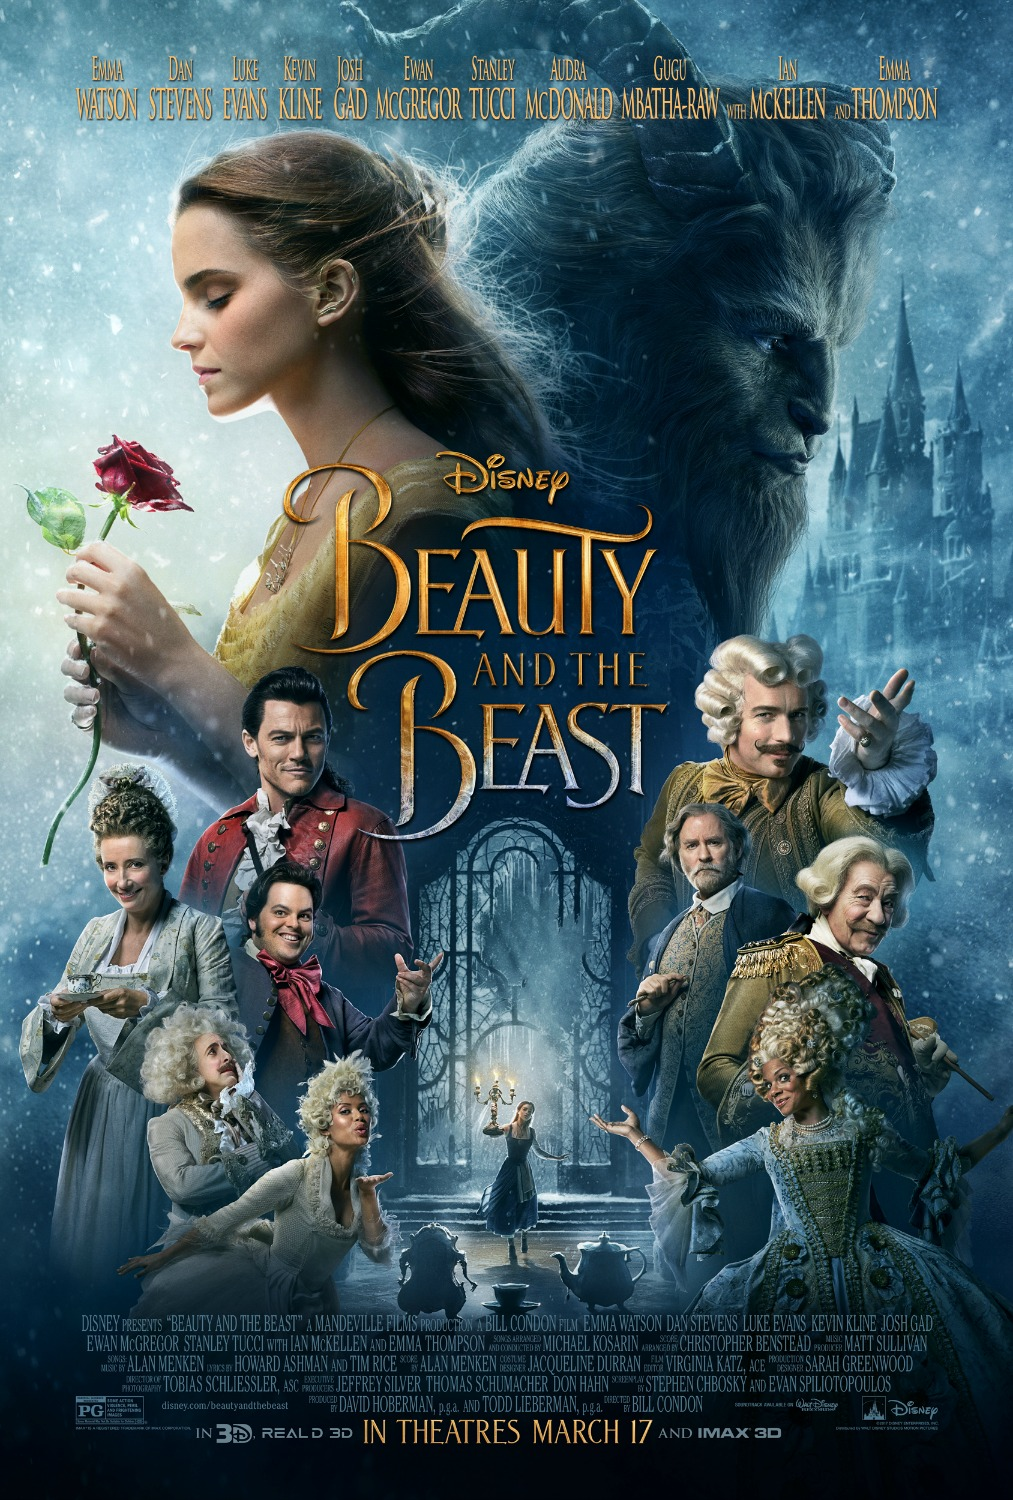 Beauty and the Beast Trailer and Posters